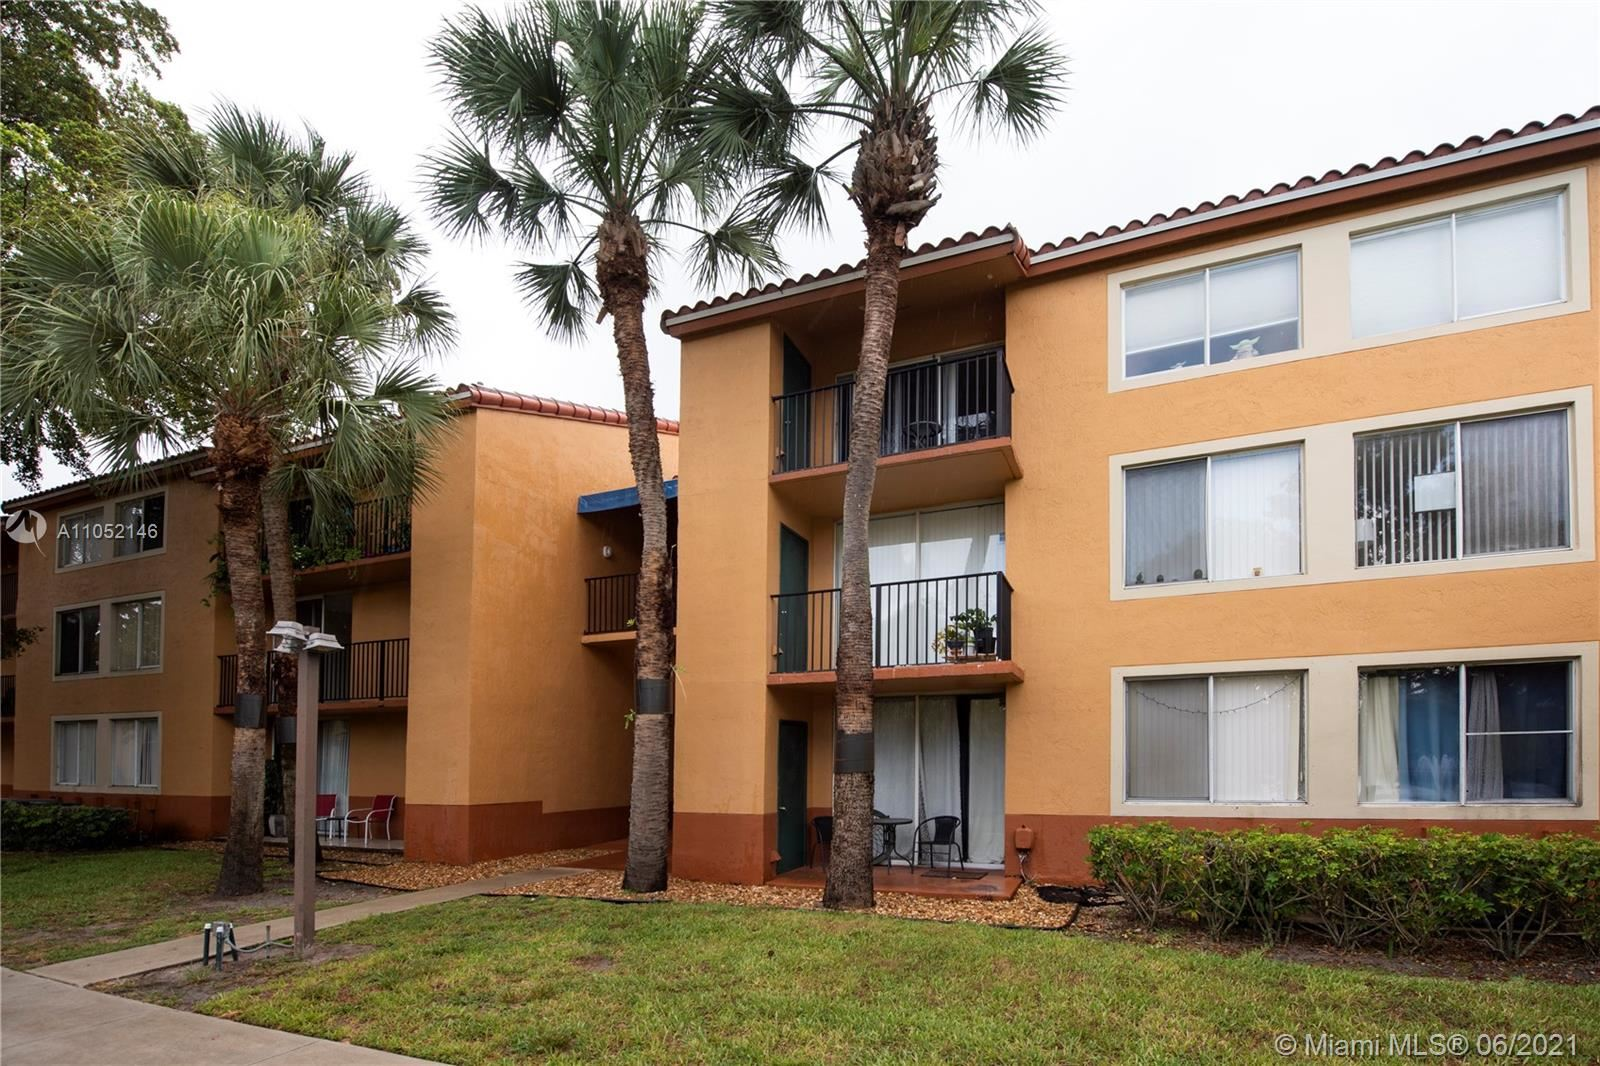 10725 Cleary Blvd #304, Plantation, FL 33324 - #: A11052146